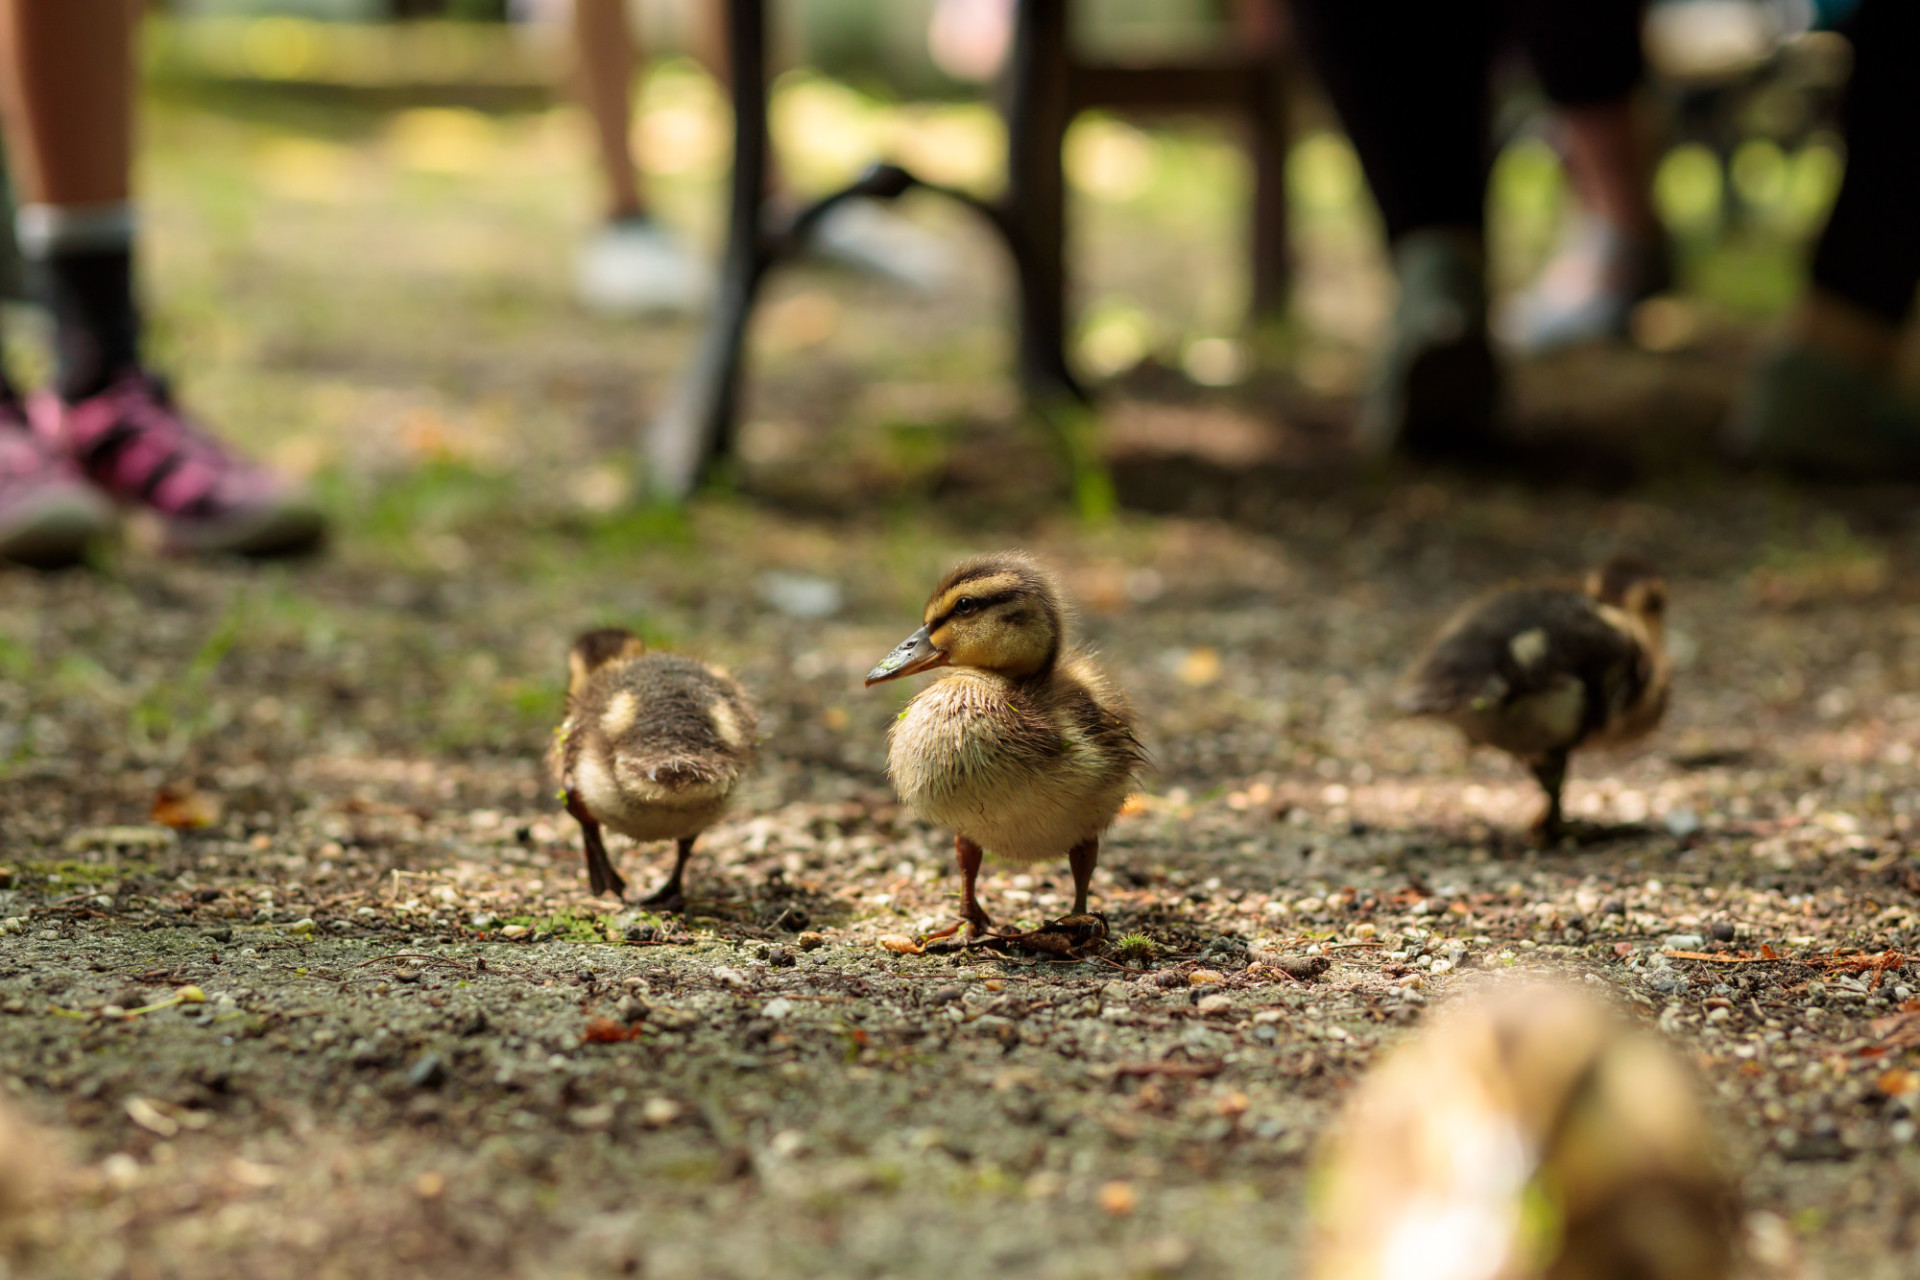 Curious little ducklings playing with children